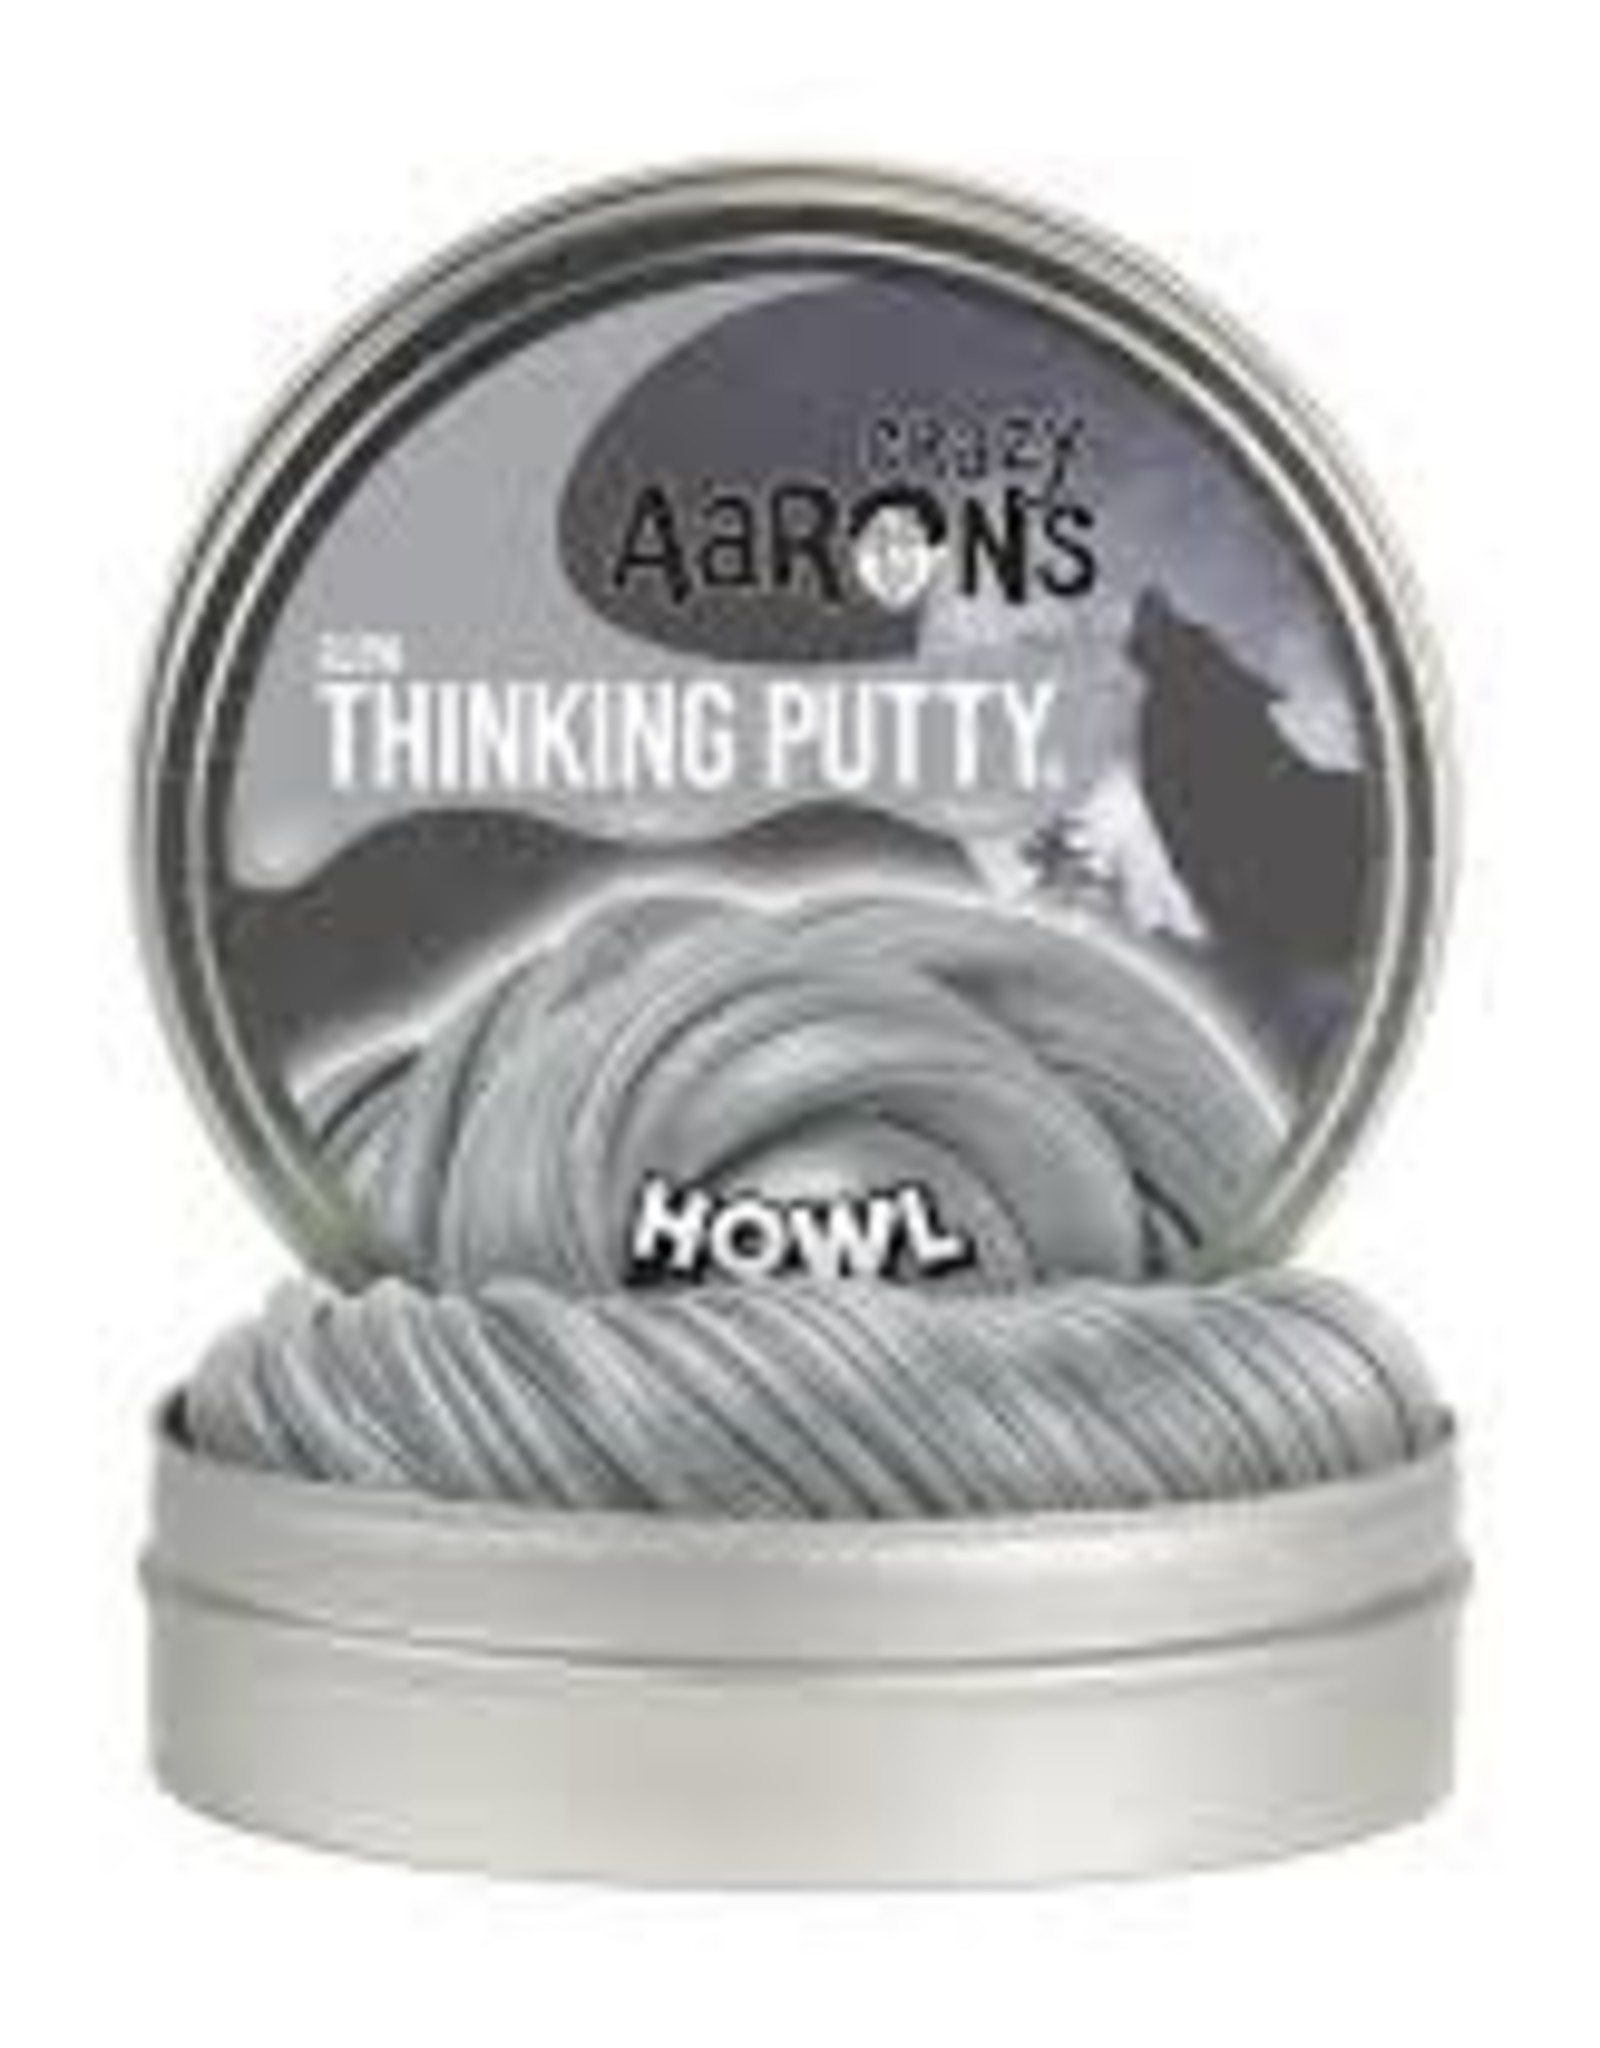 Crazy Aaron's Thinking Putty Howl 4'' Glow w/Moon Phase Cards